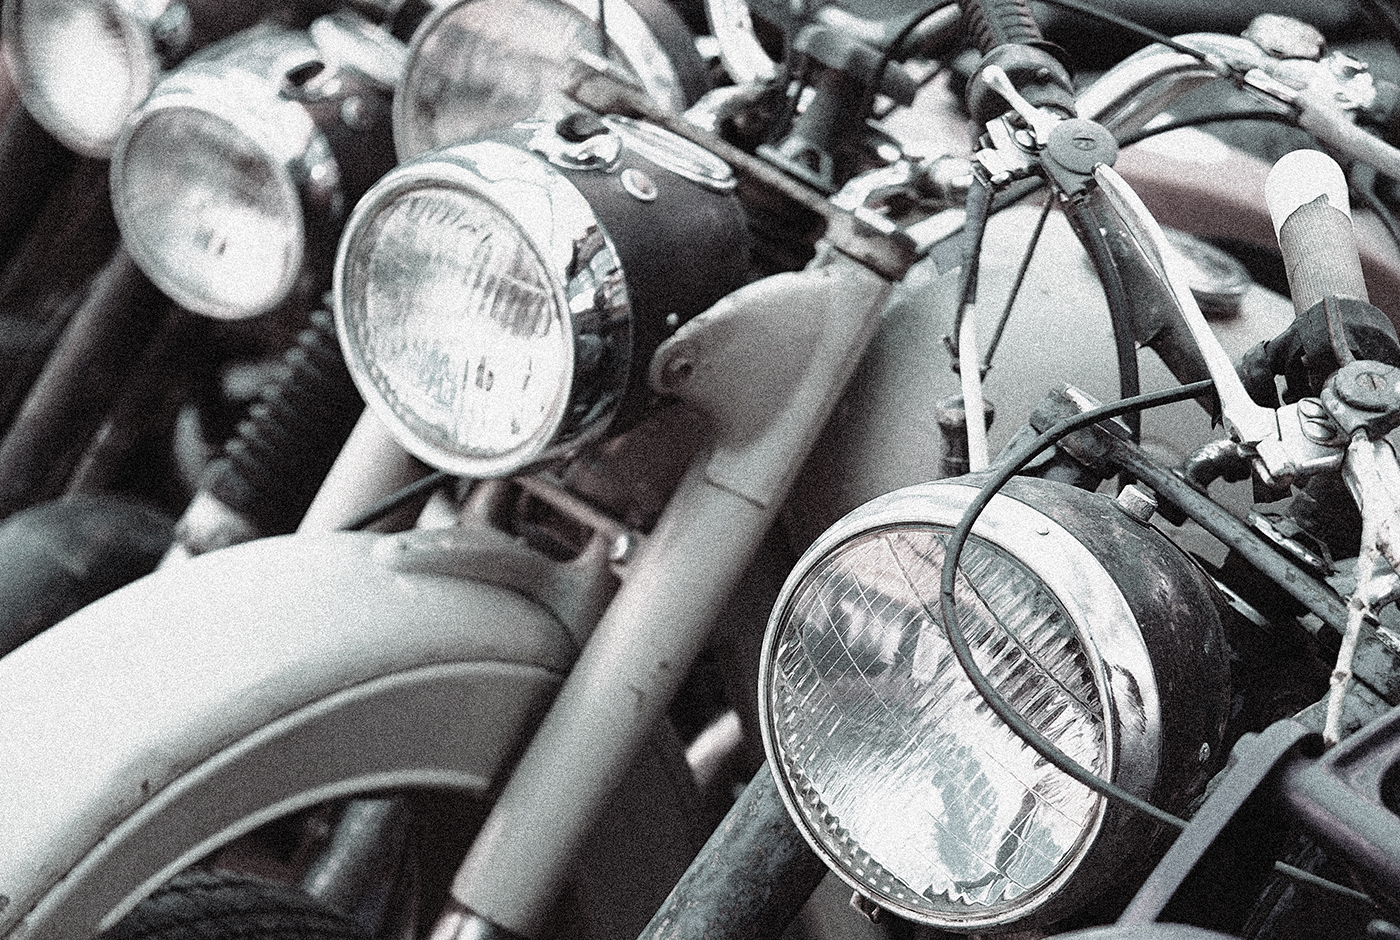 Isle of Man Festival of Motorcycling